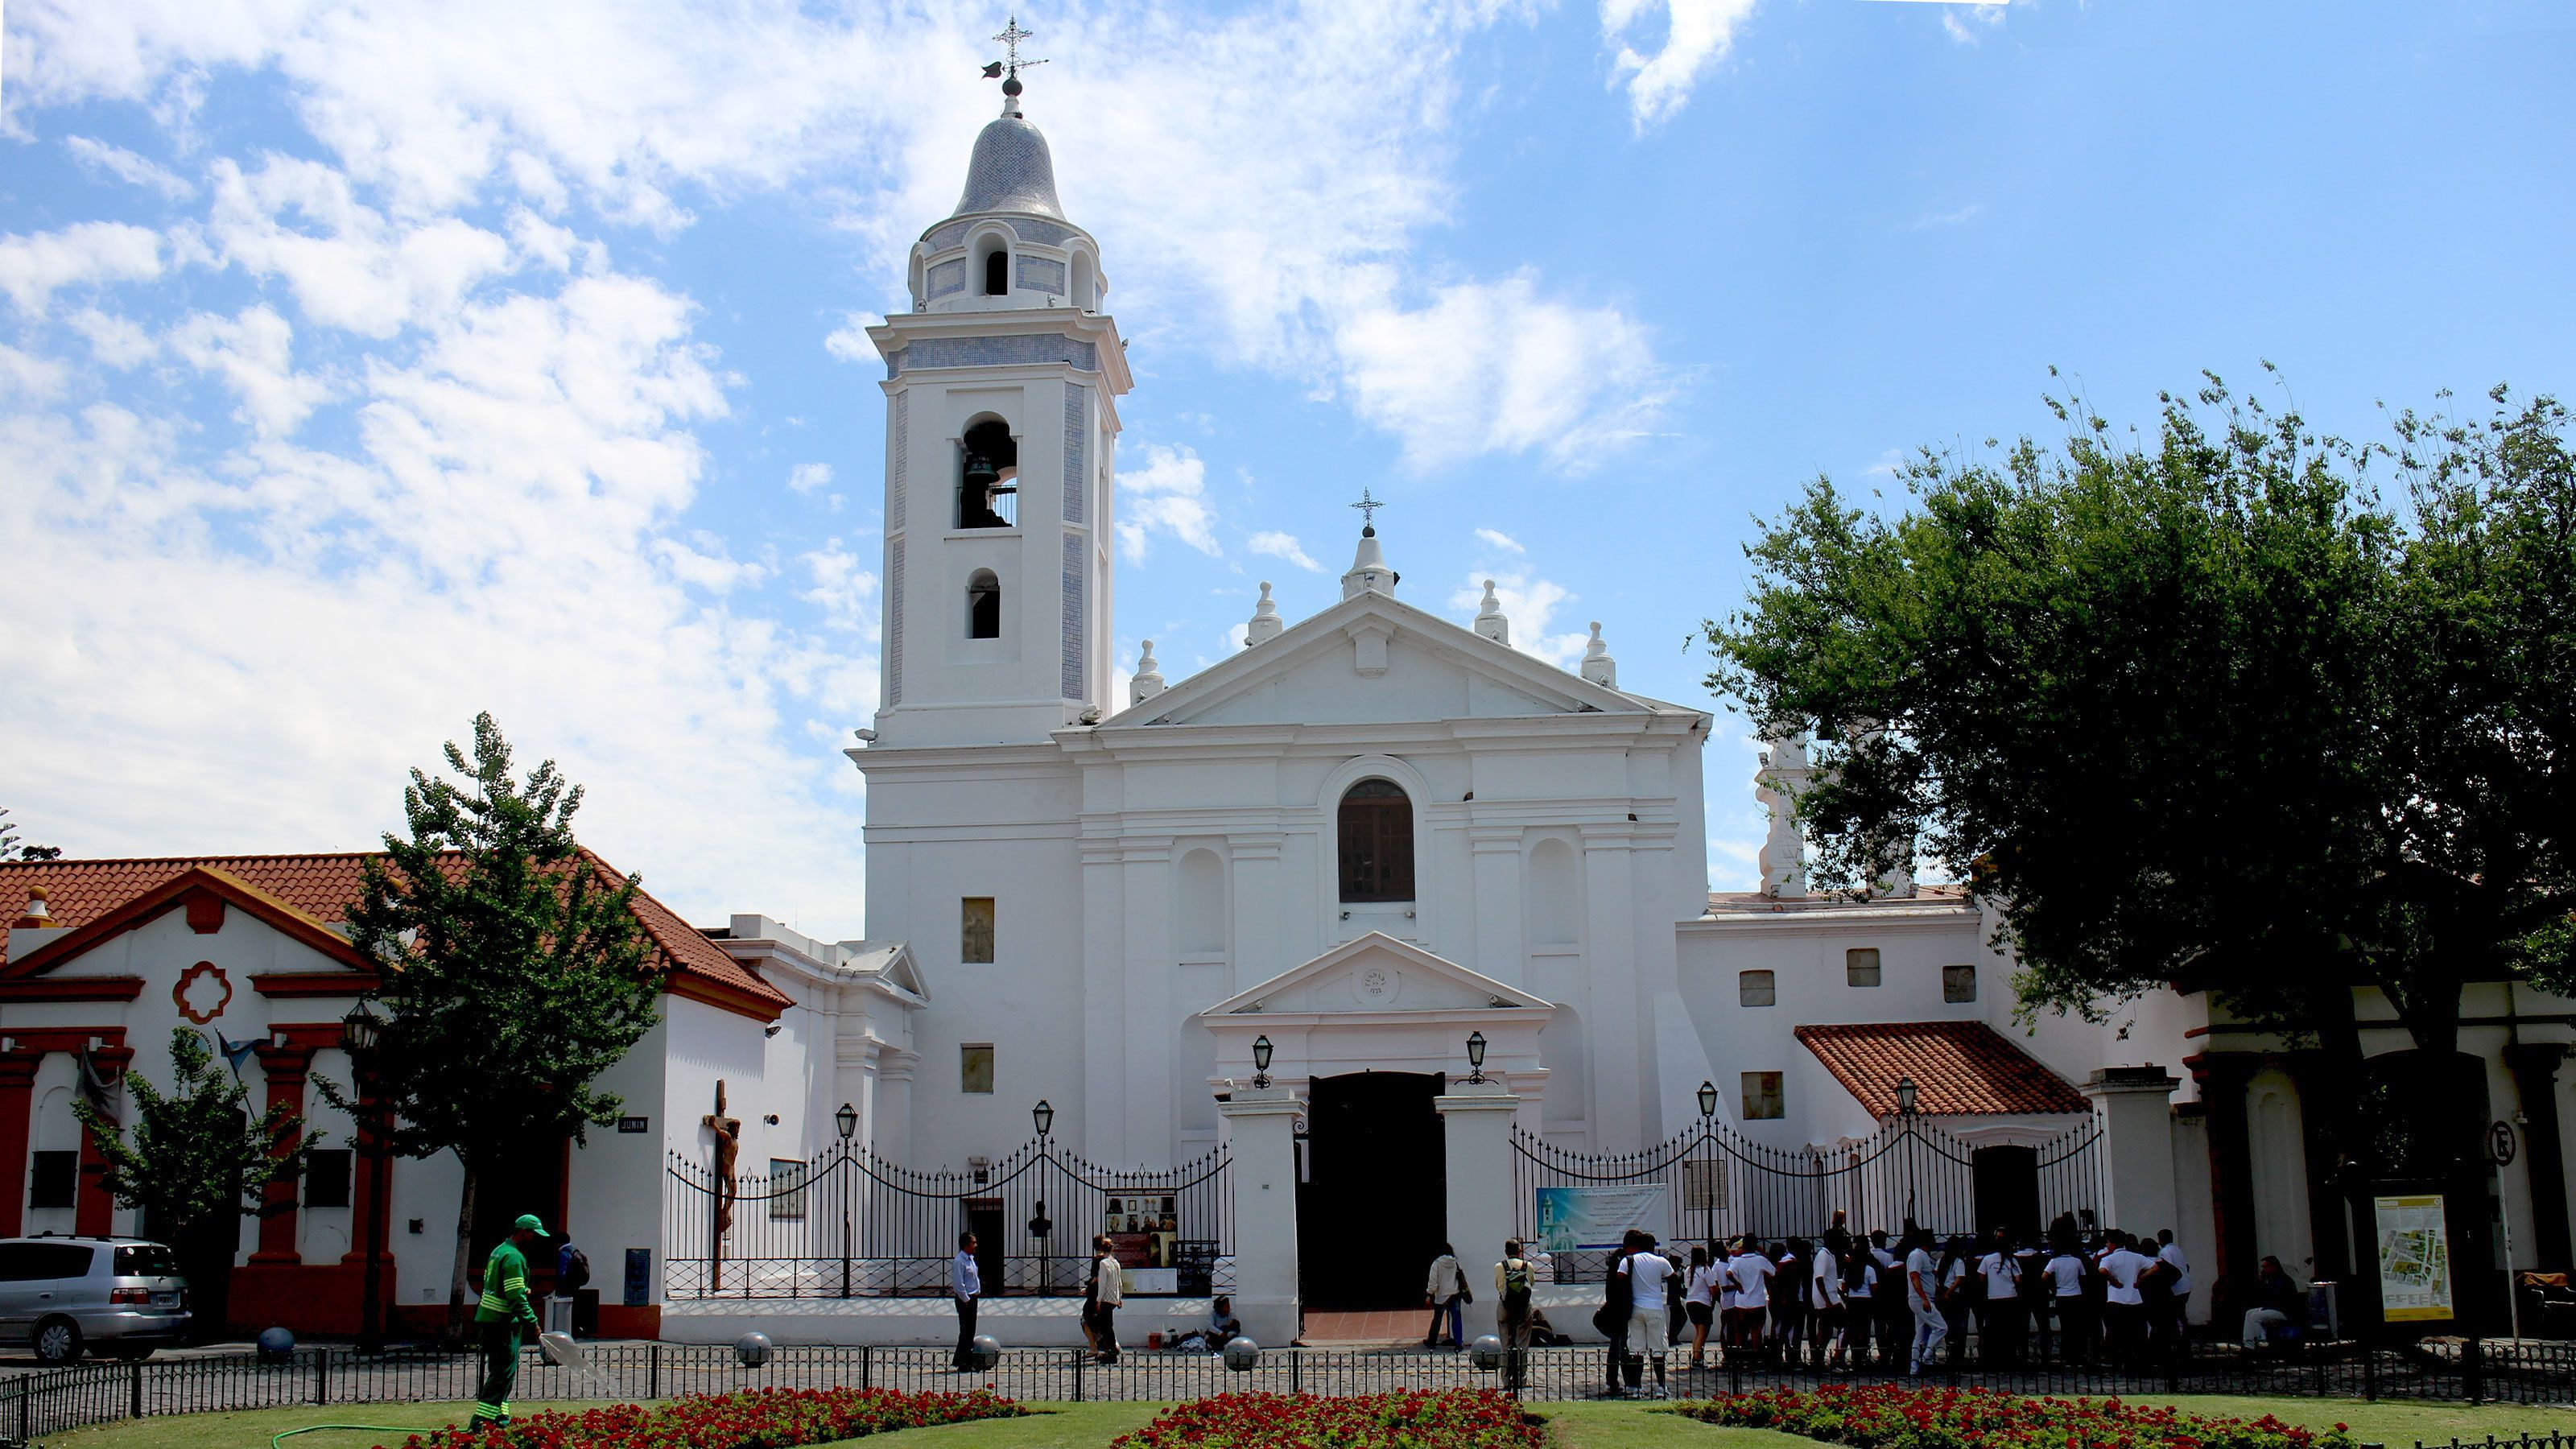 White church with bell tower in Buenos Aires